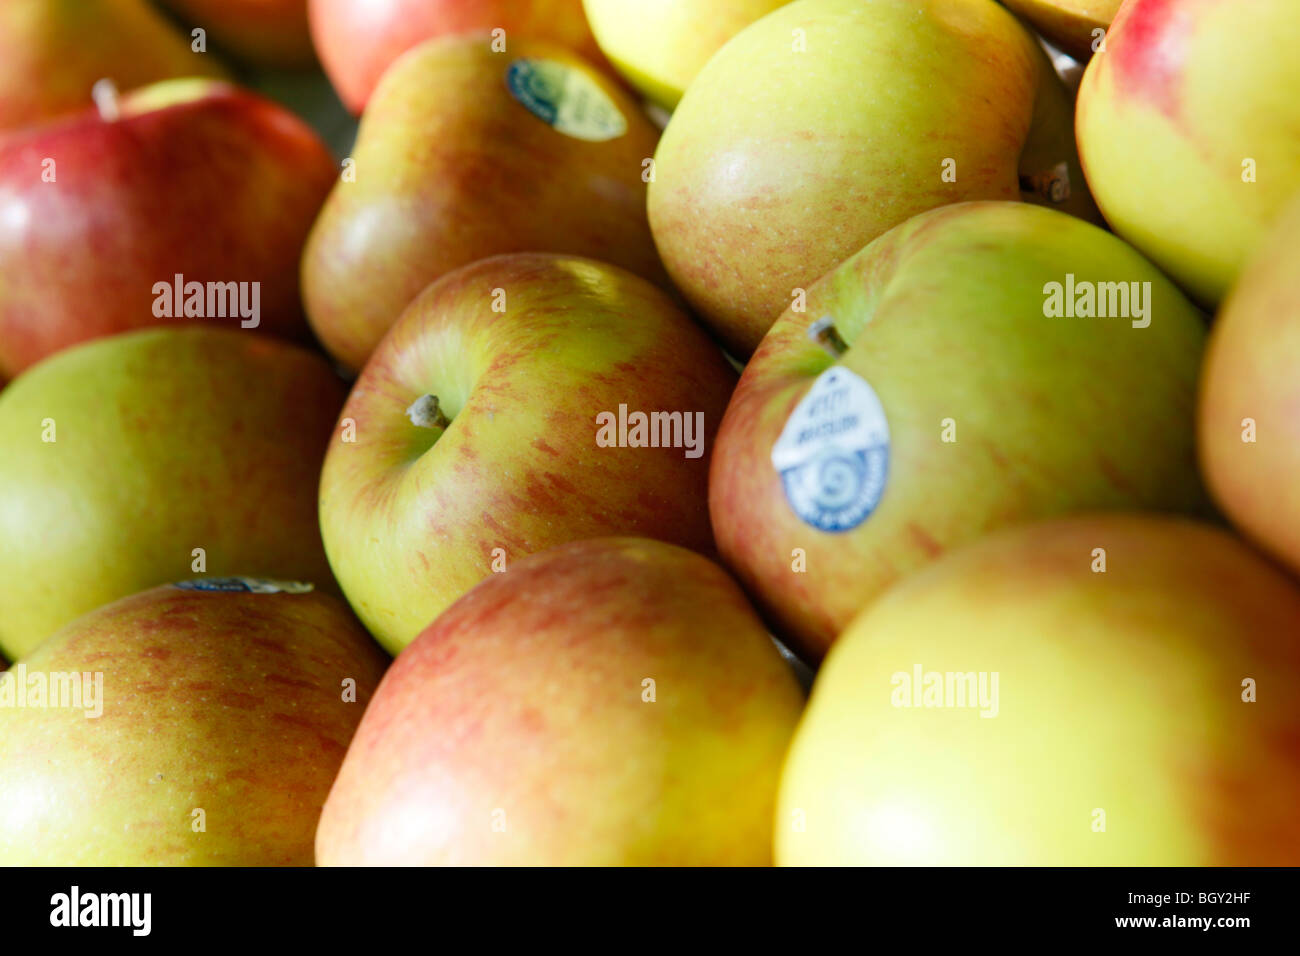 Tray of apples in a supermarket. - Stock Image